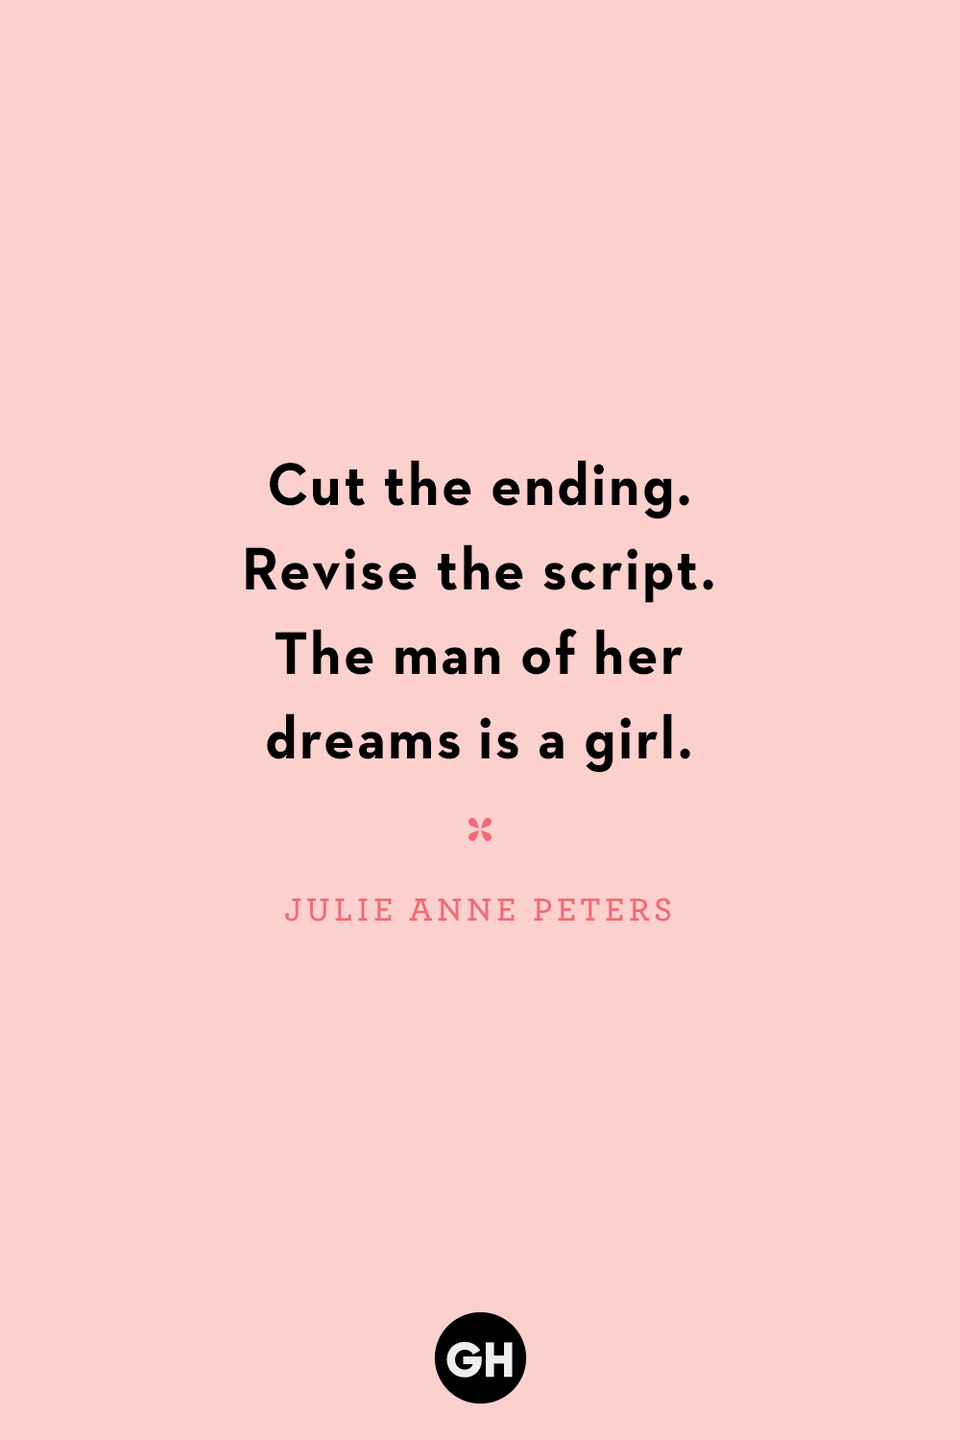 <p>Cut the ending. Revise the script. The man of her dreams is a girl.</p>